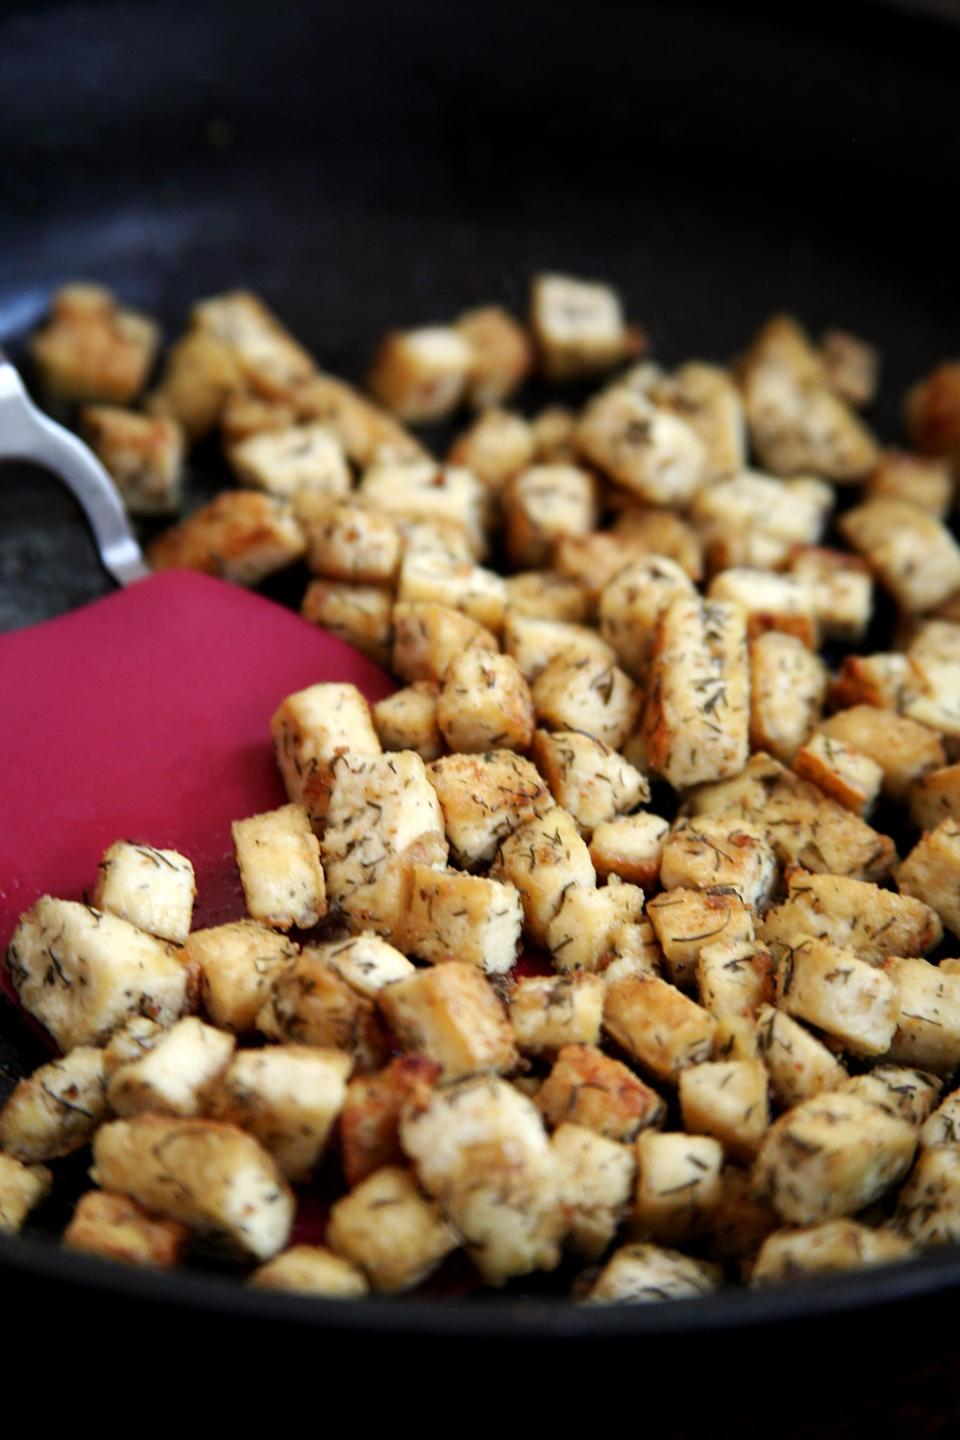 "<p>Make eating healthy feel more exciting by learning how to cook a new nutritious food, like <a href=""https://www.popsugar.com/fitness/How-Cook-Tofu-34429412"" class=""link rapid-noclick-resp"" rel=""nofollow noopener"" target=""_blank"" data-ylk=""slk:tofu"">tofu</a>, <a href=""https://www.popsugar.com/fitness/Mexican-Tempeh-Quinoa-Salad-35360978"" class=""link rapid-noclick-resp"" rel=""nofollow noopener"" target=""_blank"" data-ylk=""slk:tempeh"">tempeh</a>, or <a href=""https://www.popsugar.com/fitness/How-Cook-Beans-Slow-Cooker-40544658"" class=""link rapid-noclick-resp"" rel=""nofollow noopener"" target=""_blank"" data-ylk=""slk:dry beans from scratch"">dry beans from scratch</a>.</p>"